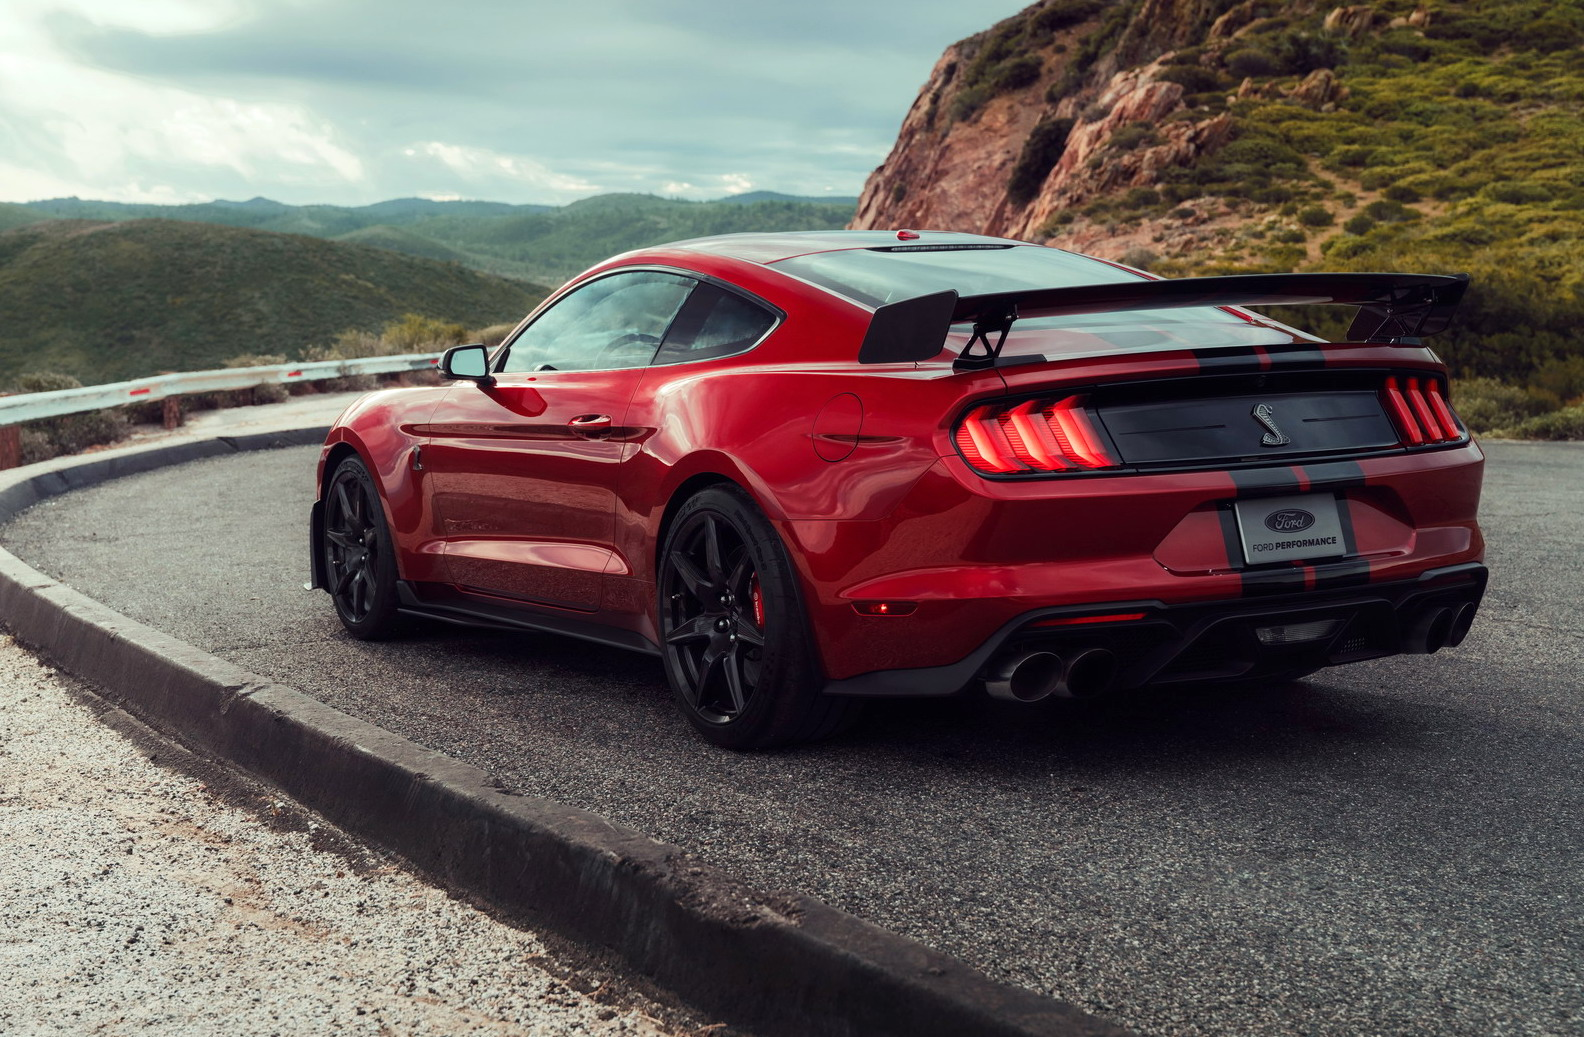 2020-Ford-Mustang-Shelby-GT500-03.jpg